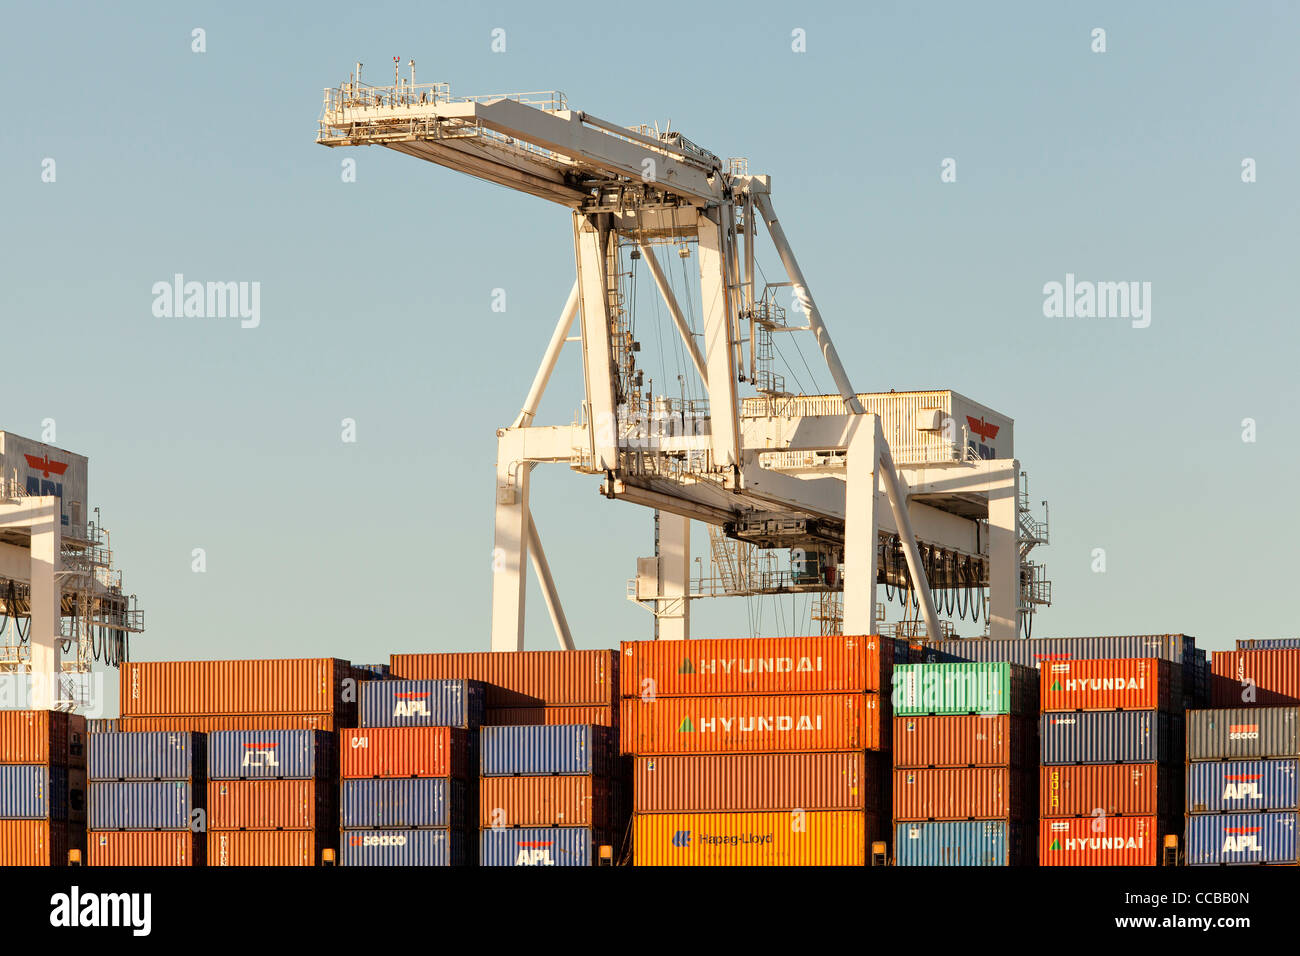 Container cranes ready to unload cargo containers from ship at Port of Oakland - California USA - Stock Image